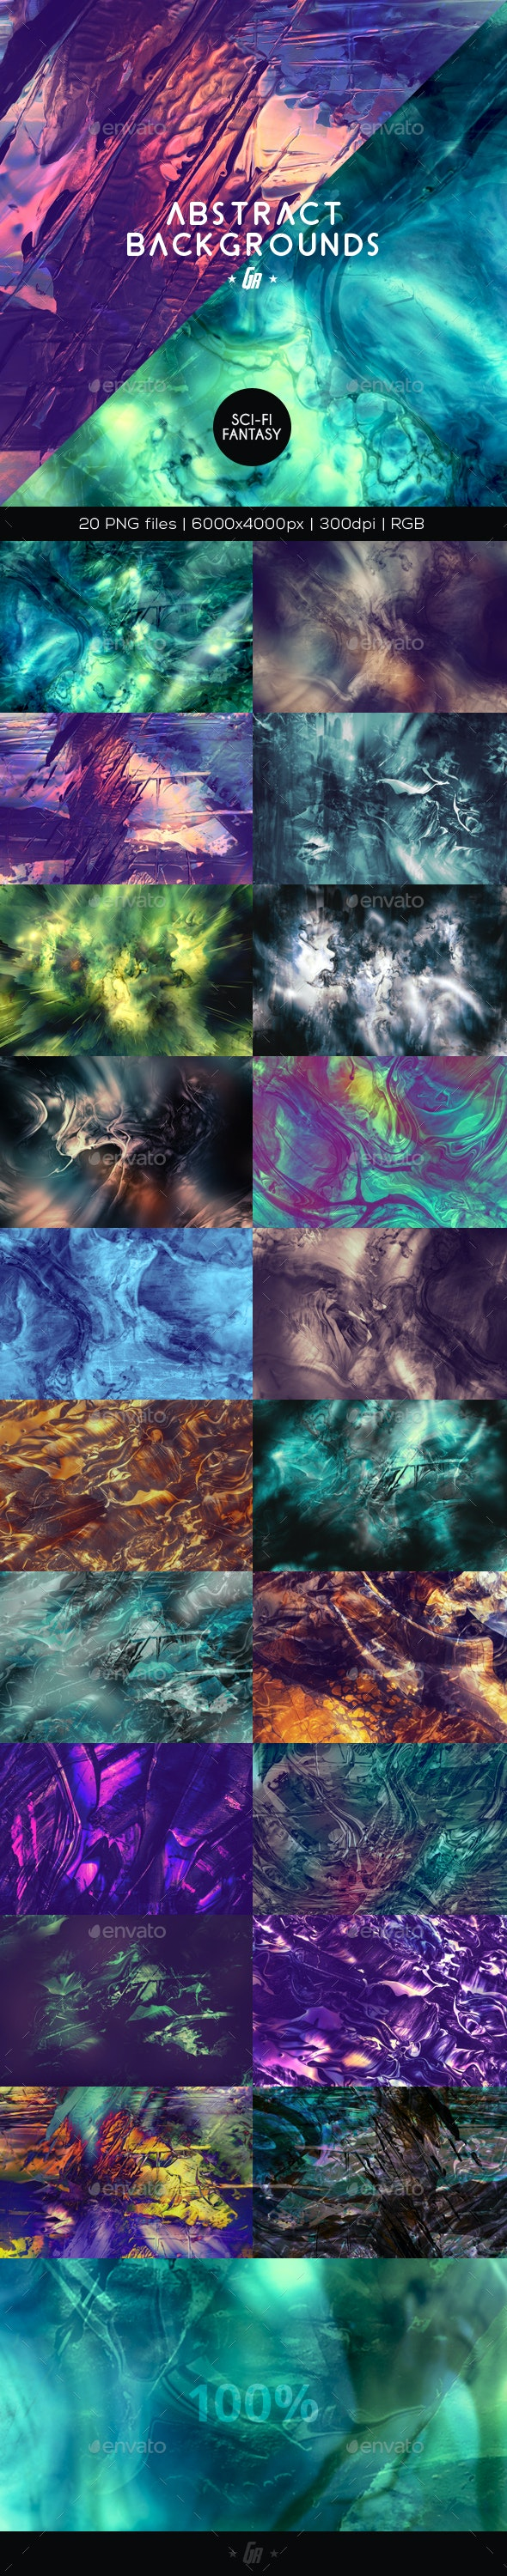 Abstract Backgrounds - Sci-fi, Fantasy - Abstract Backgrounds